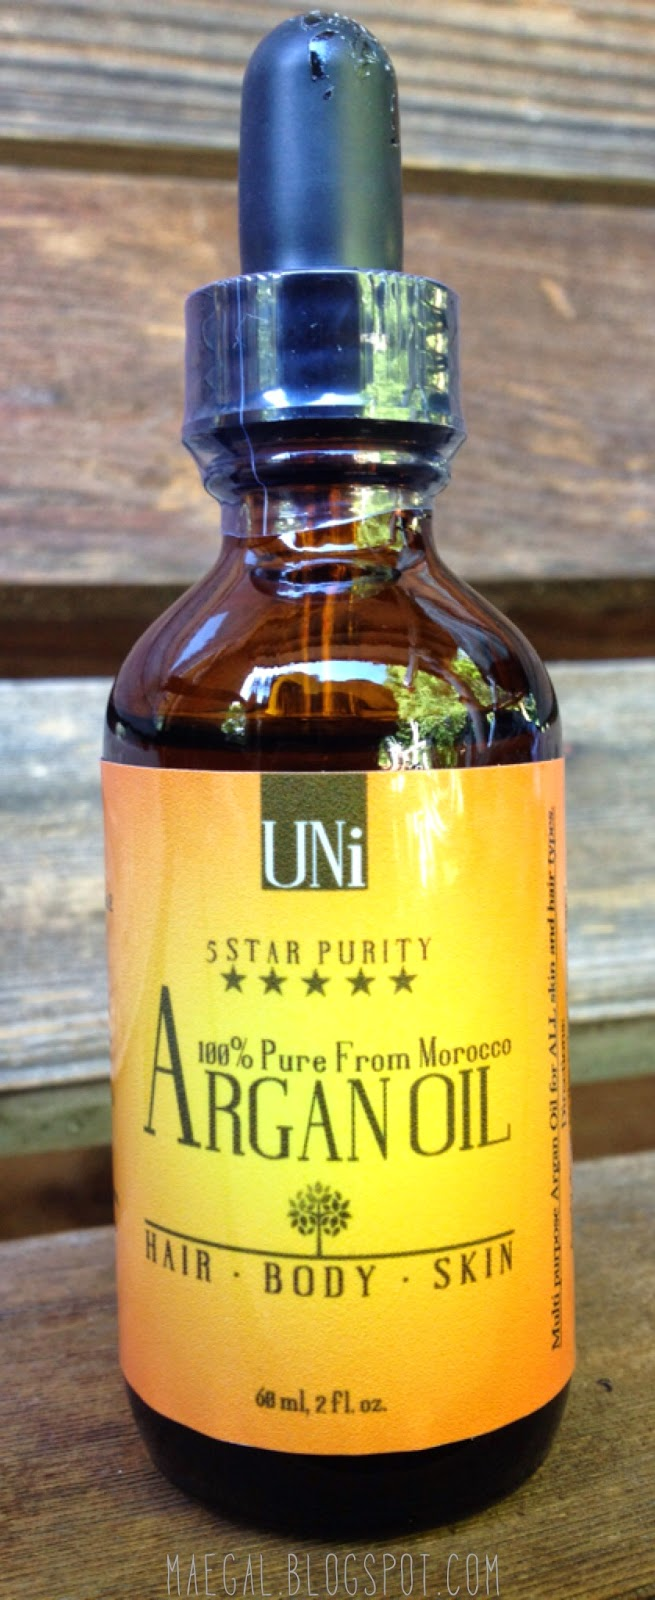 UNi Argan Oil | maegal.blogspot.com